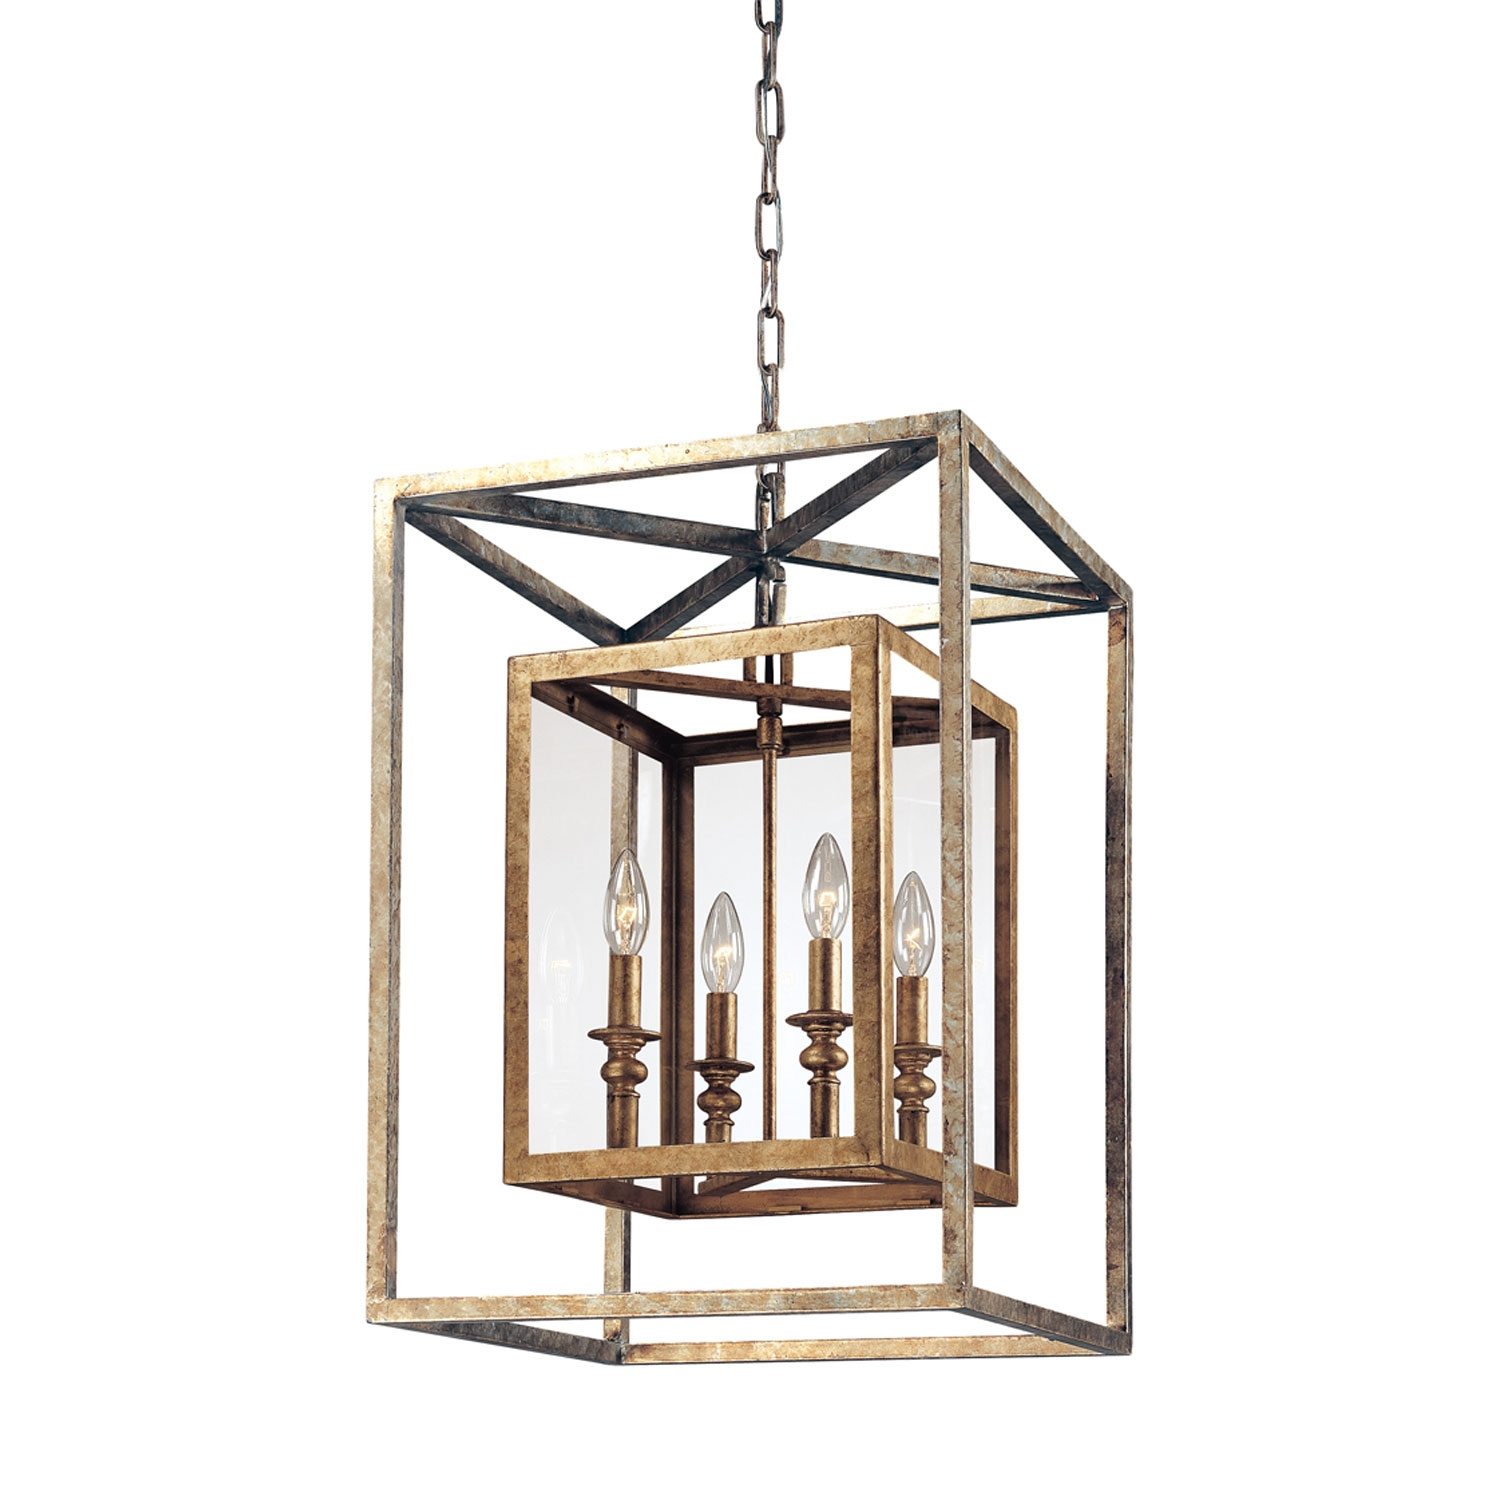 Lighting Interesting Lantern Pendant Light For Modern Kitchen Within Indoor Lantern Chandelier (Image 10 of 15)